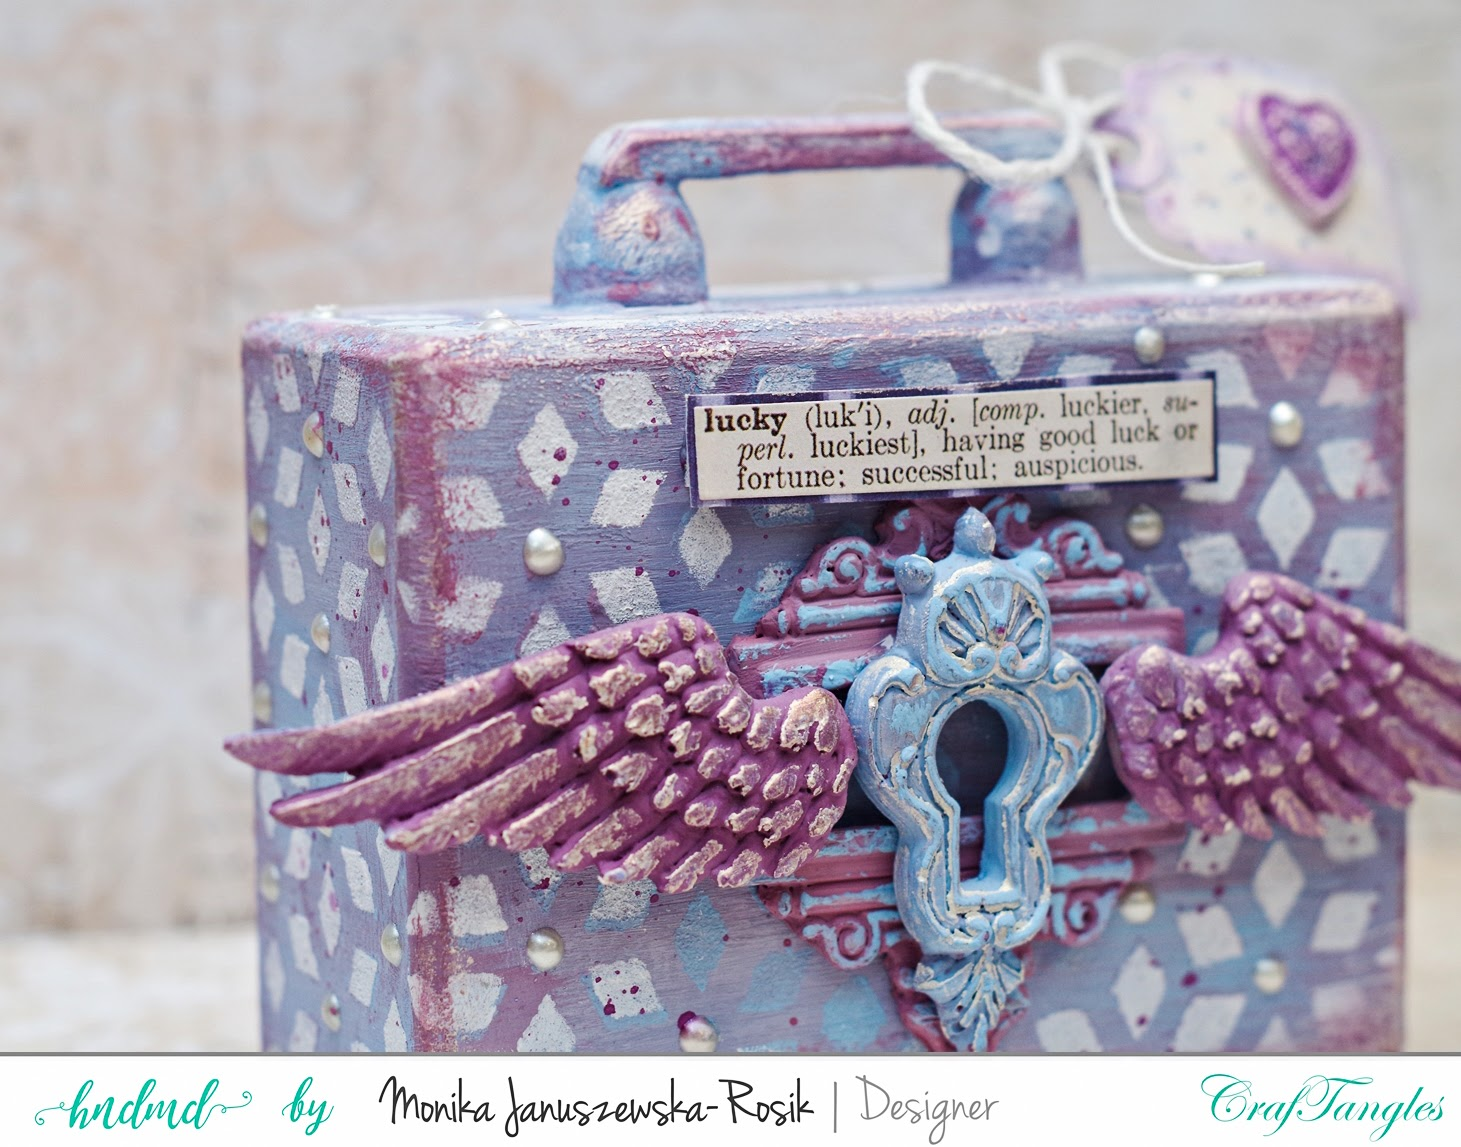 Altered moneybox painted with CrafTangles Chalky Paints 2